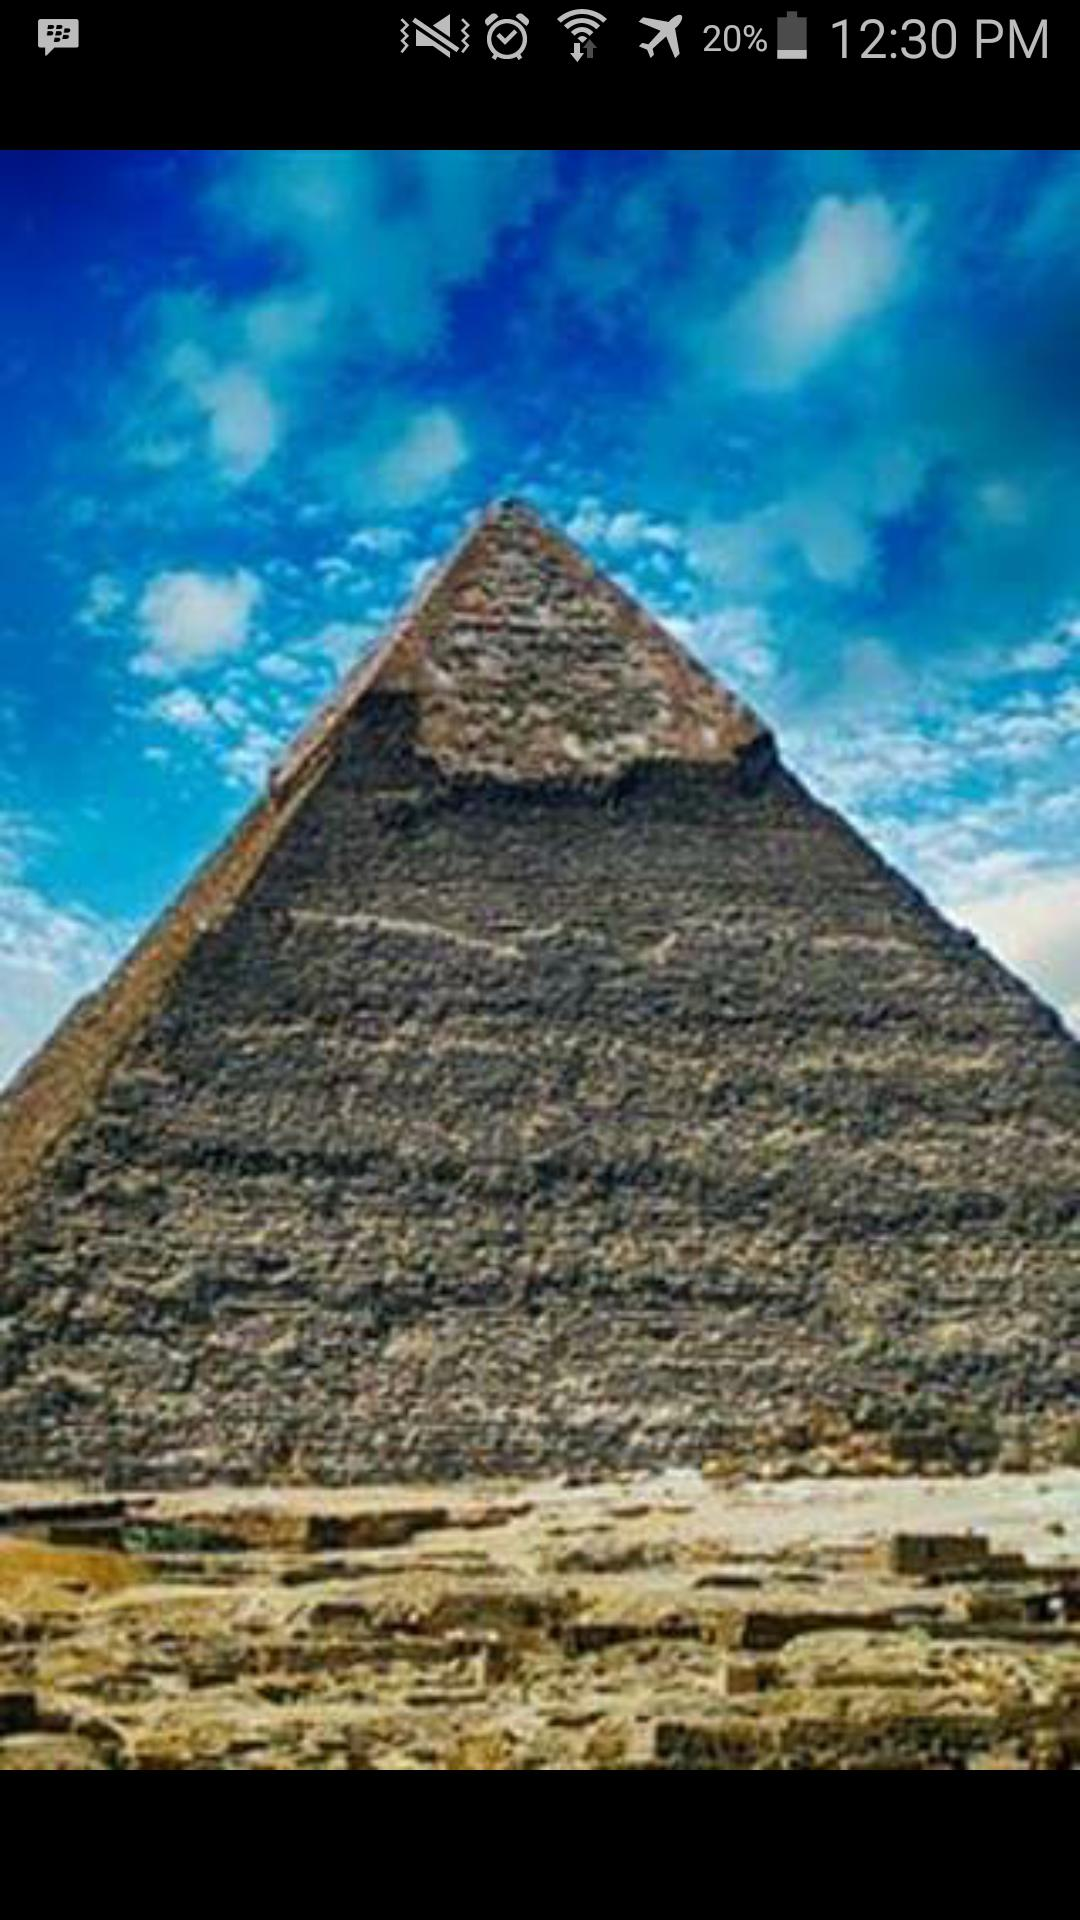 Pyramids Wallpaper Hd For Android Apk Download